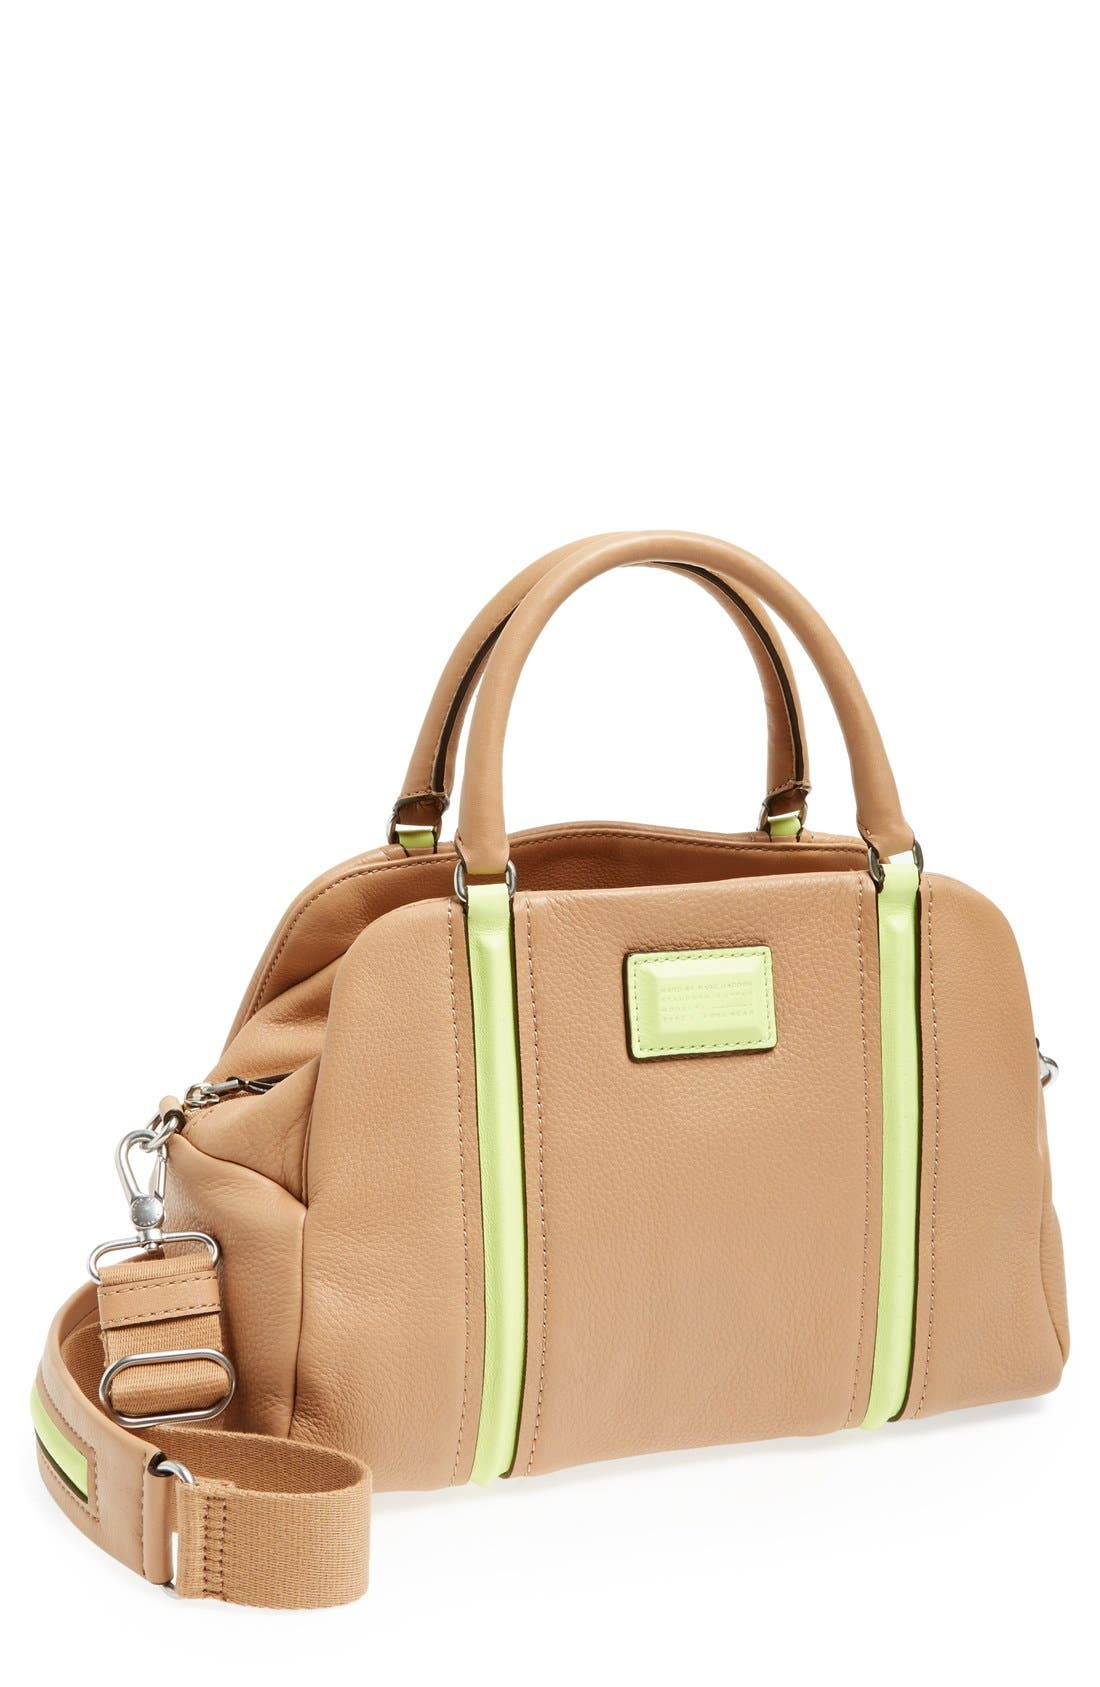 Alternate Image 1 Selected - MARC BY MARC JACOBS 'Q' Leather Satchel